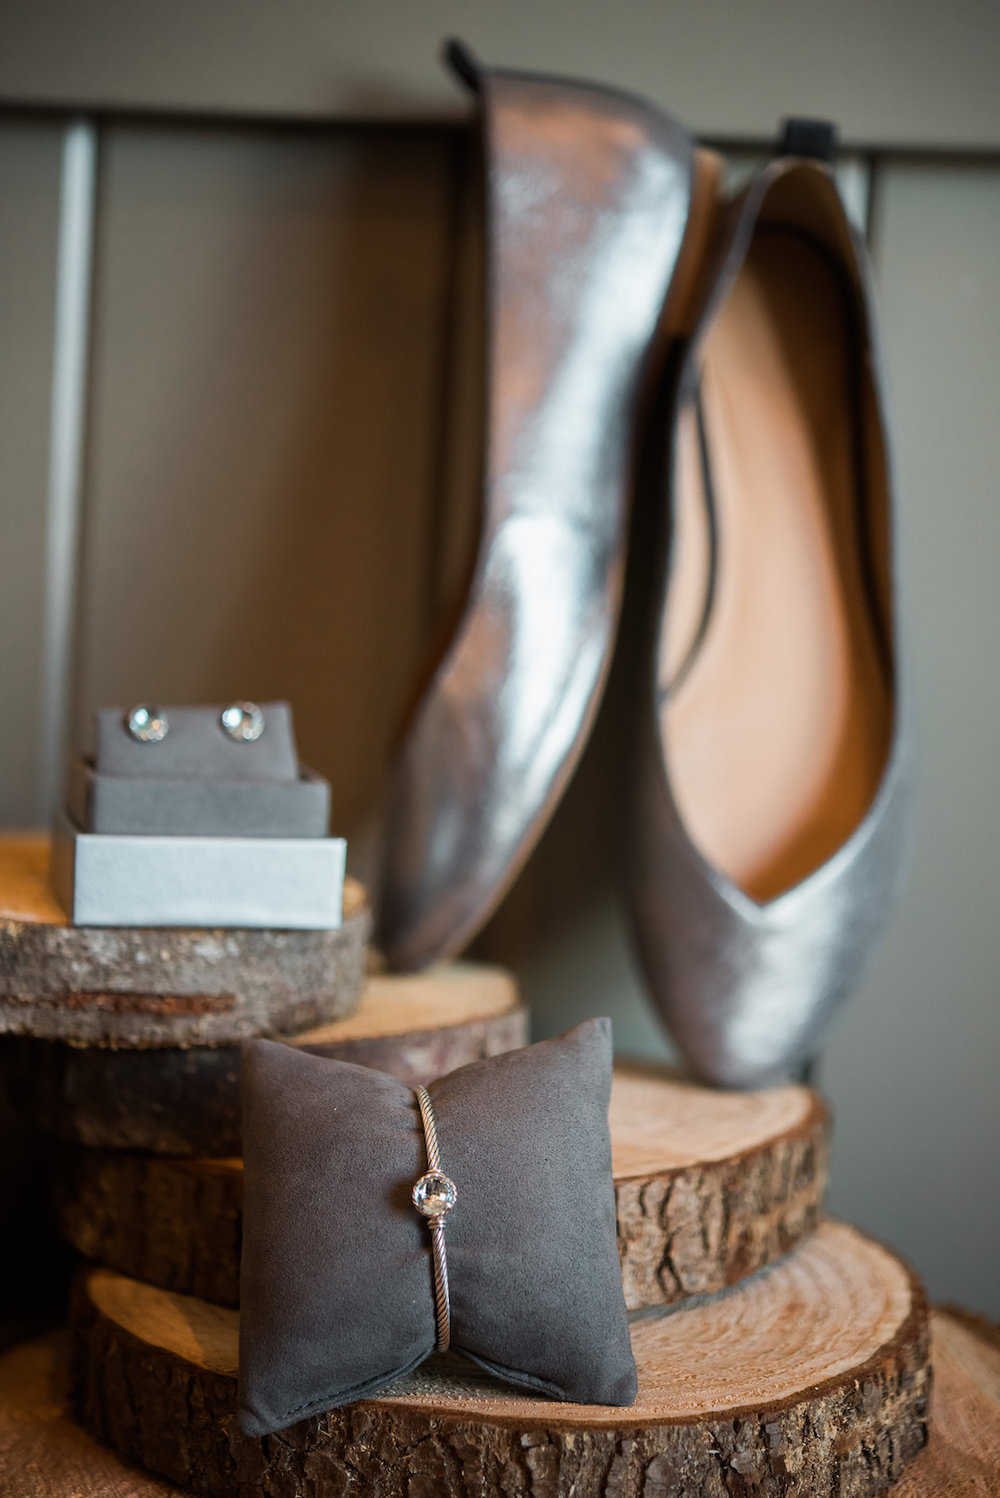 Detail shot of jewelry and shoes on rustic wood at Woodland Park Zoo Wedding photographed by Seattle Wedding Photographer Rebecca Ellison Photography. www.RebeccaEllison.com